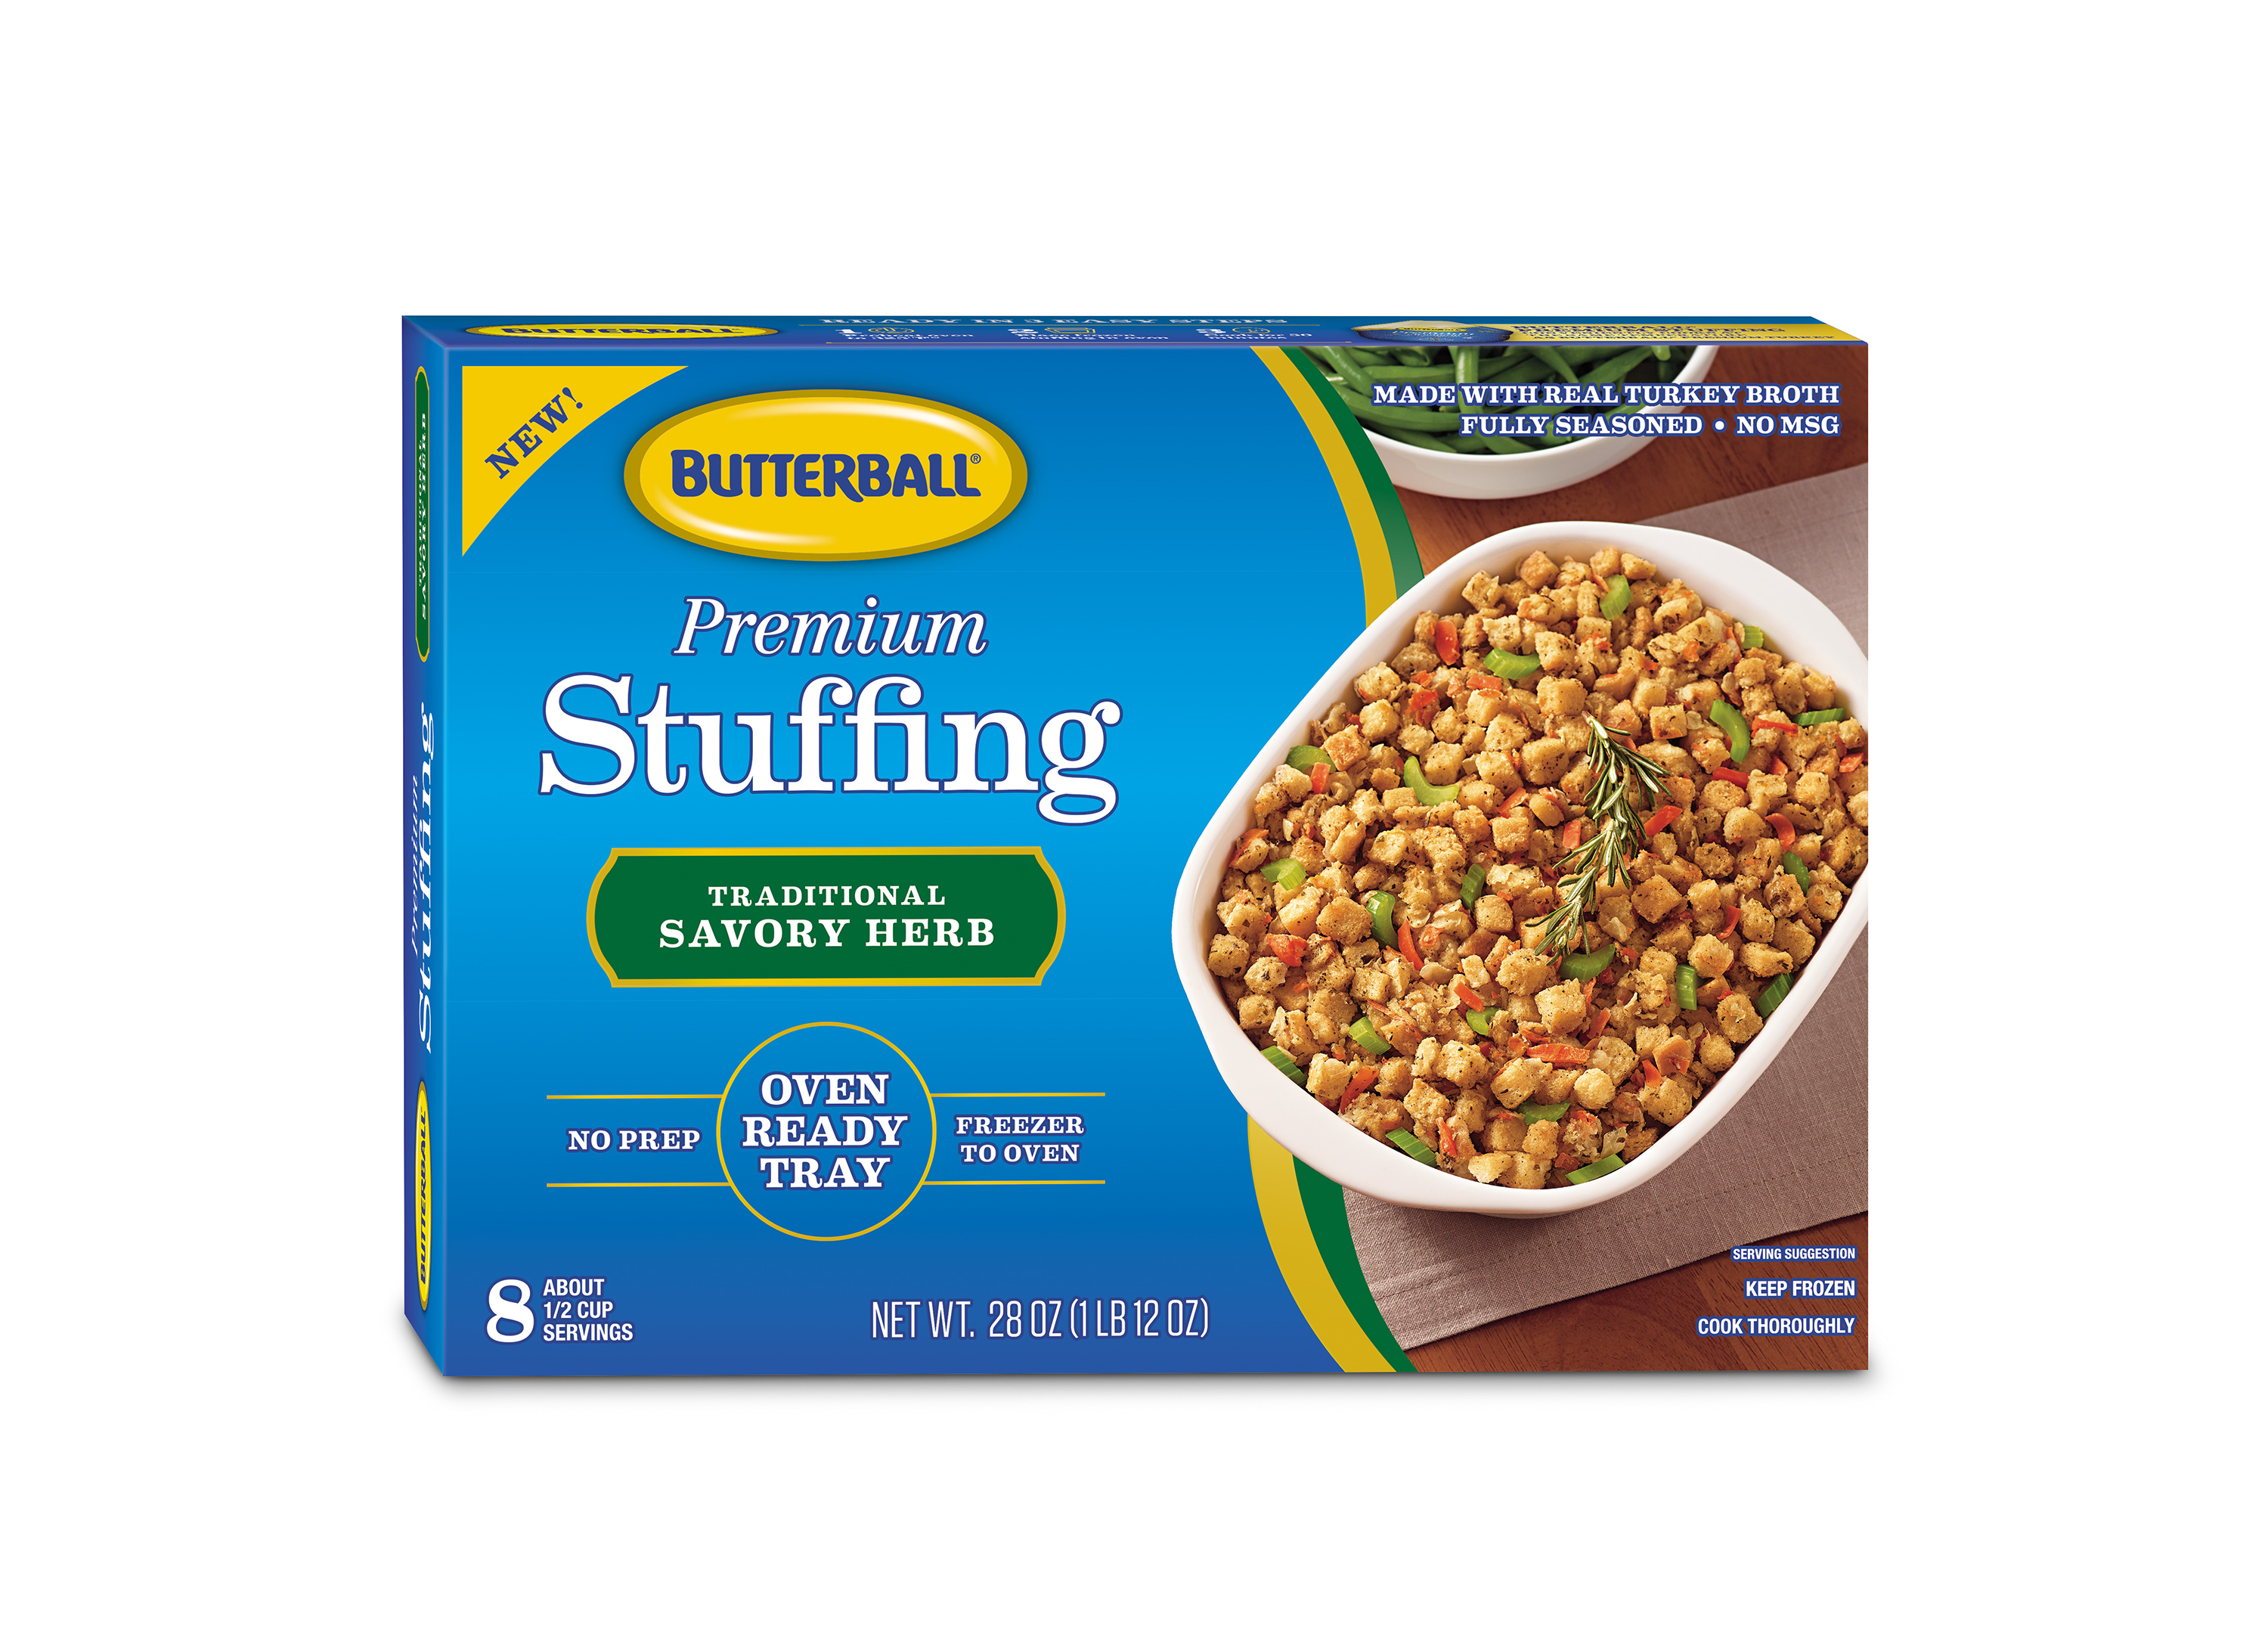 Butterball's Premium Stuffing Traditional Savory Herb product image